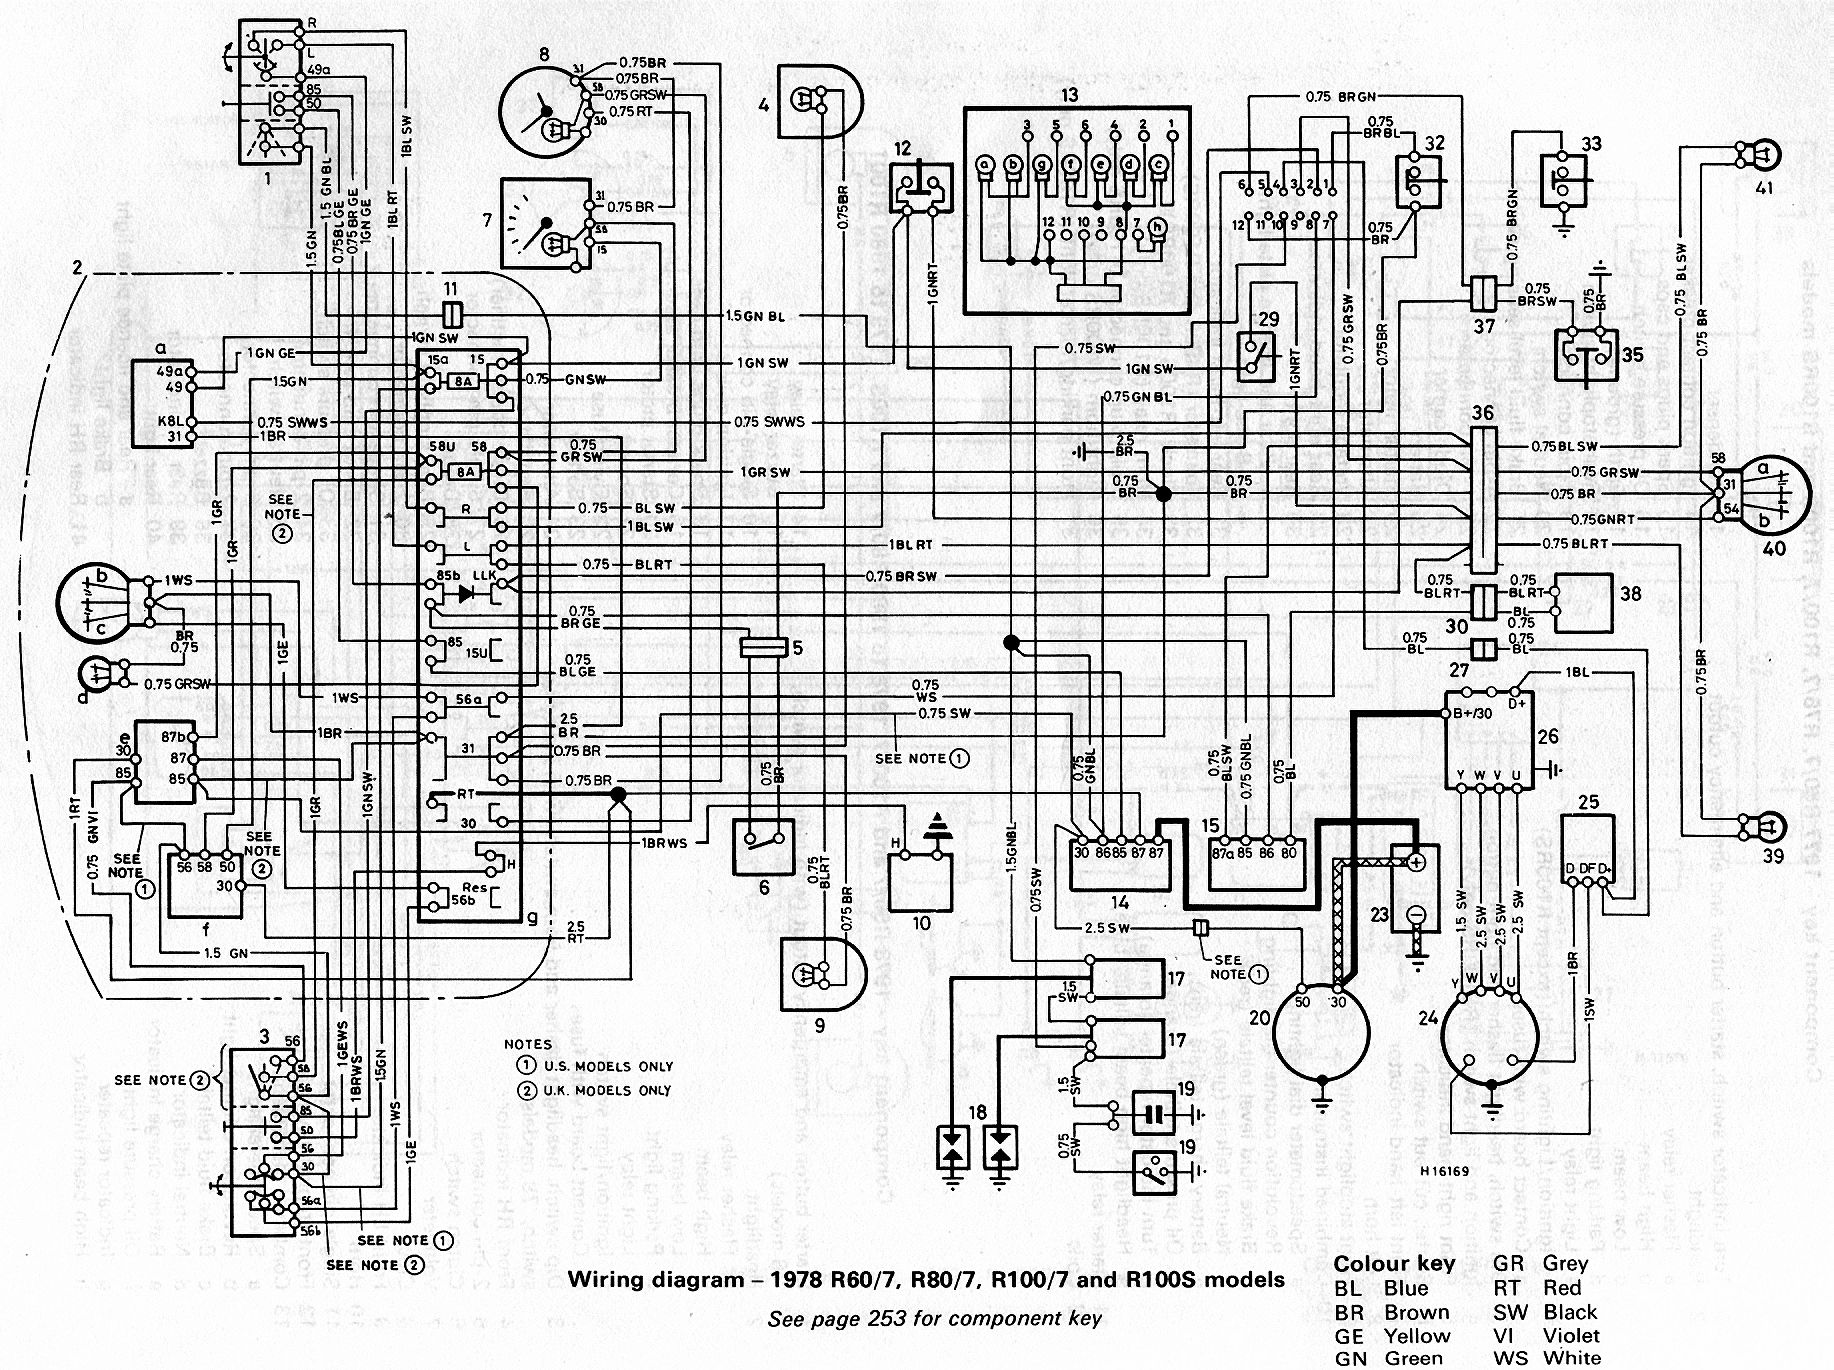 bmw r51 3 wiring diagram movements allowed by synovial joints library 1984 r80 7 chassis wire harness r airhead r60 r75